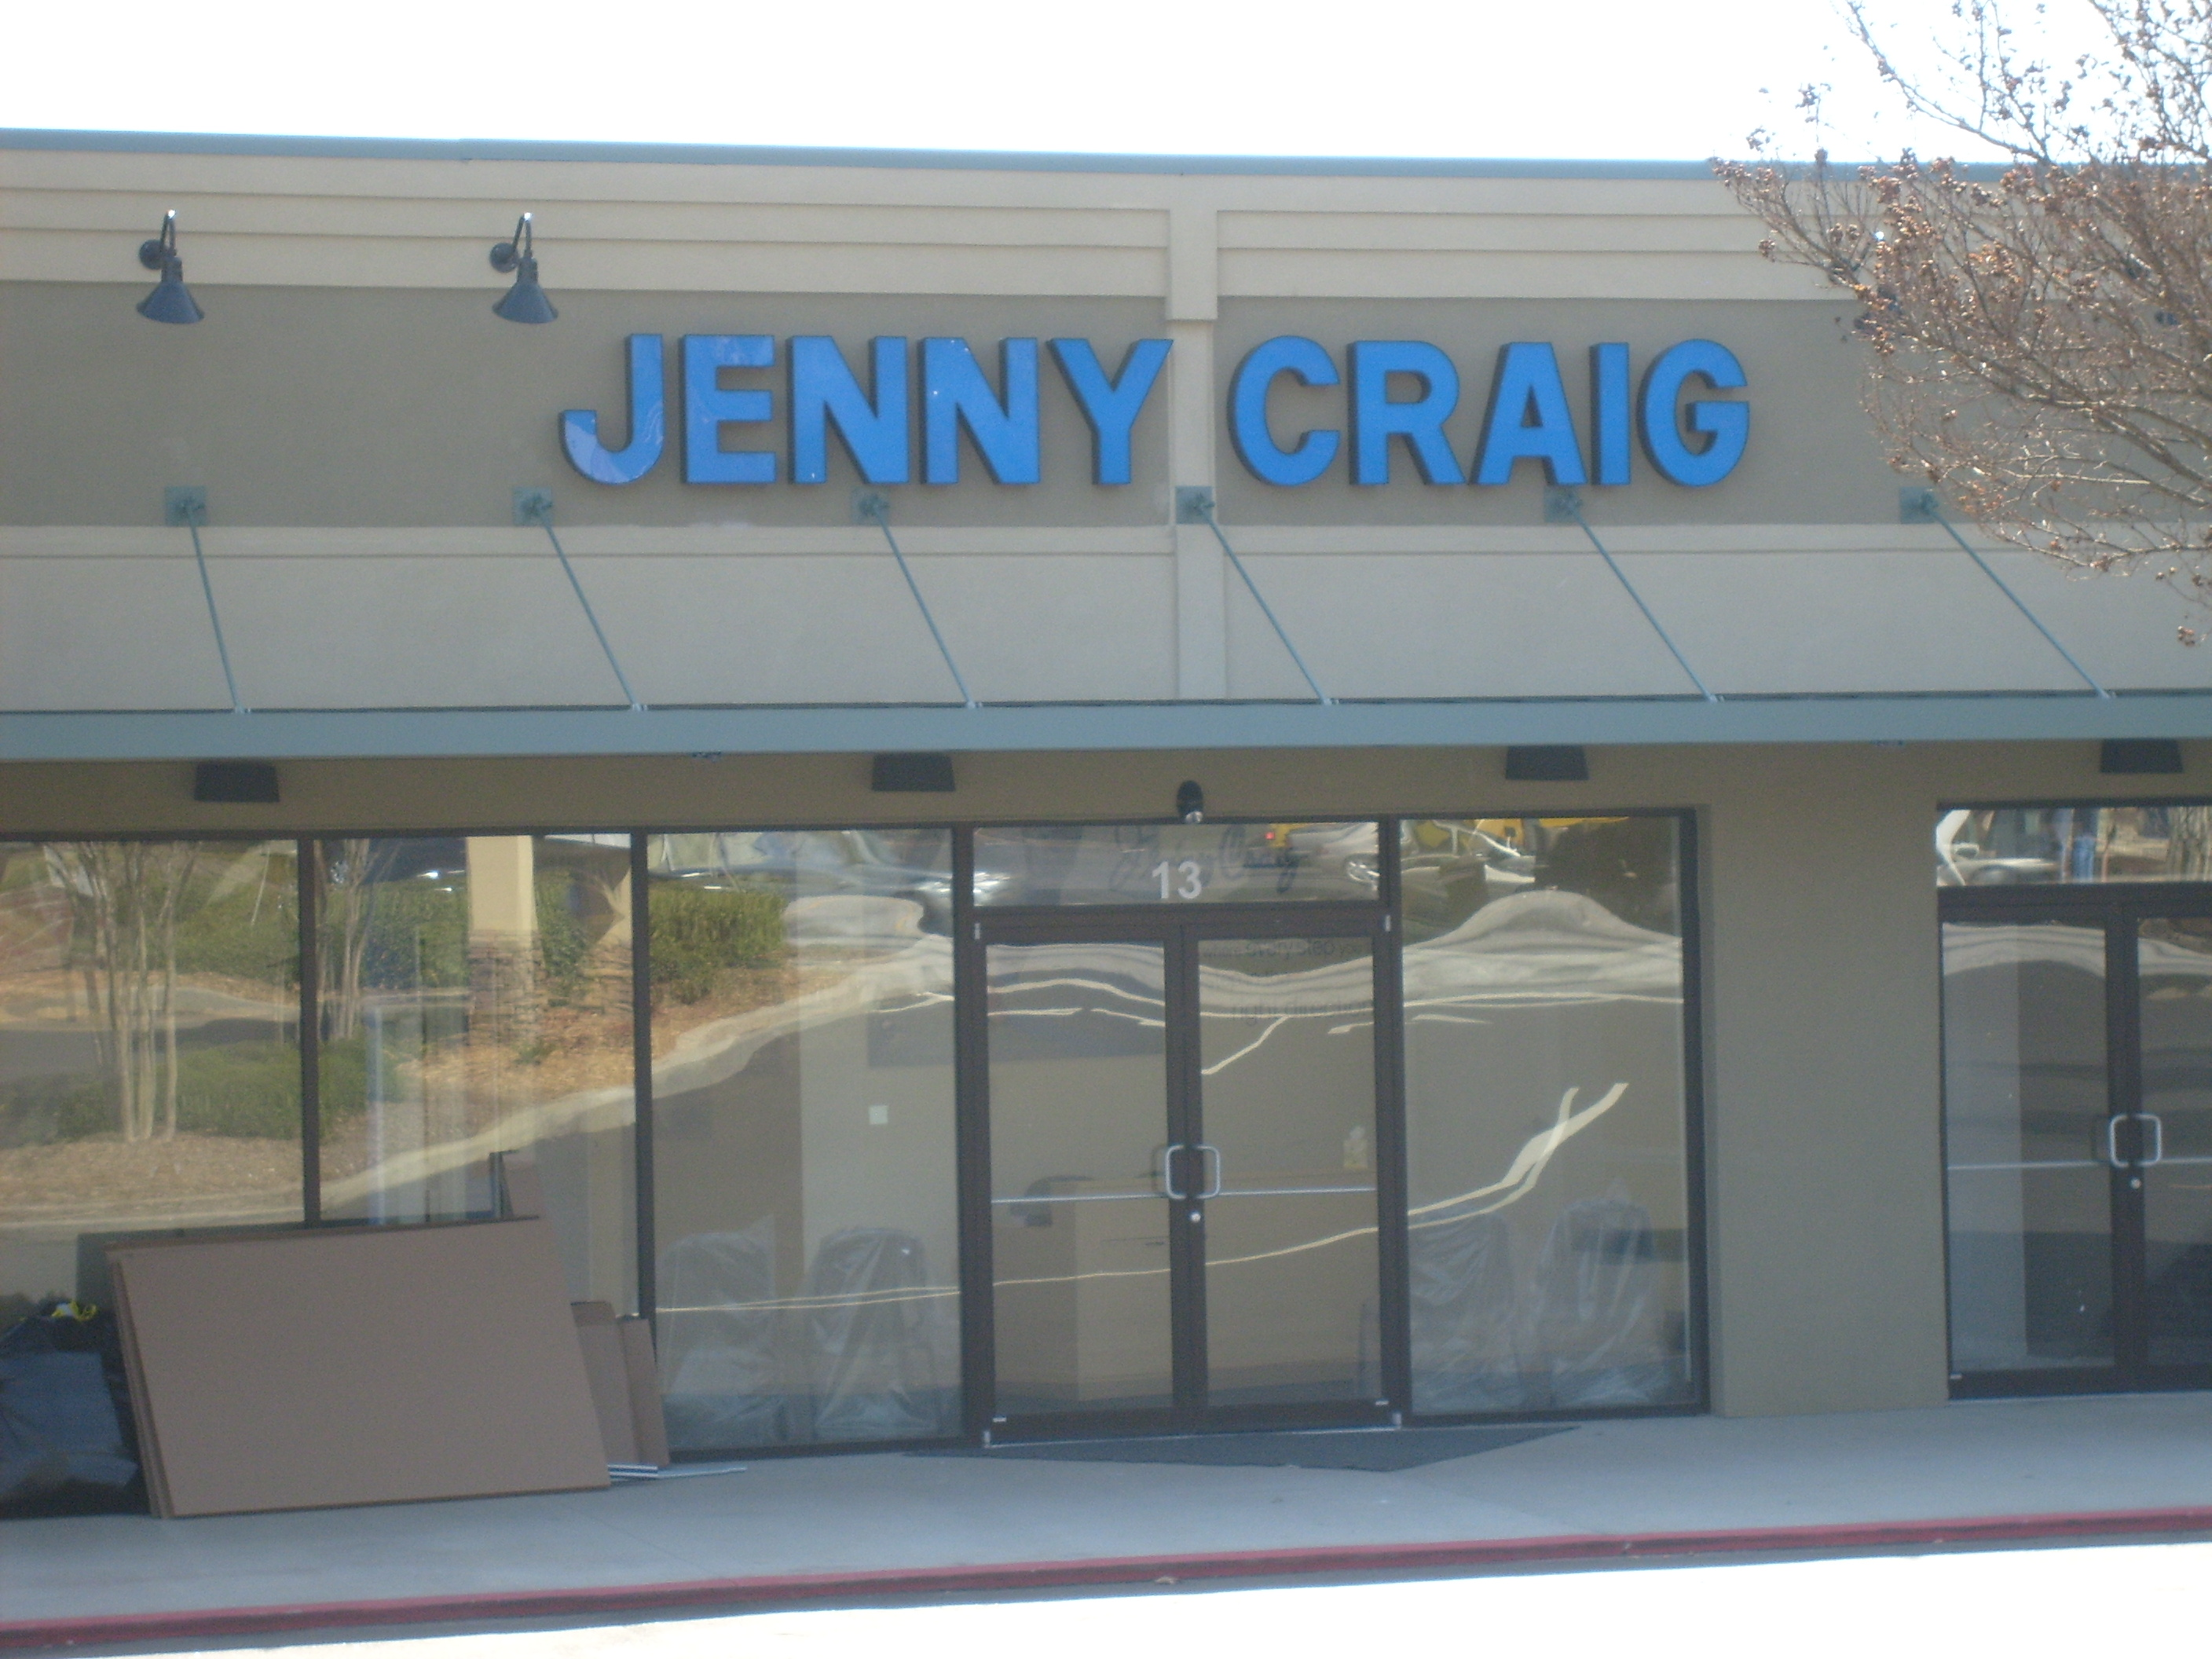 Jenny Craig Spartanburg Weight Loss Centers in Spartanburg, SC